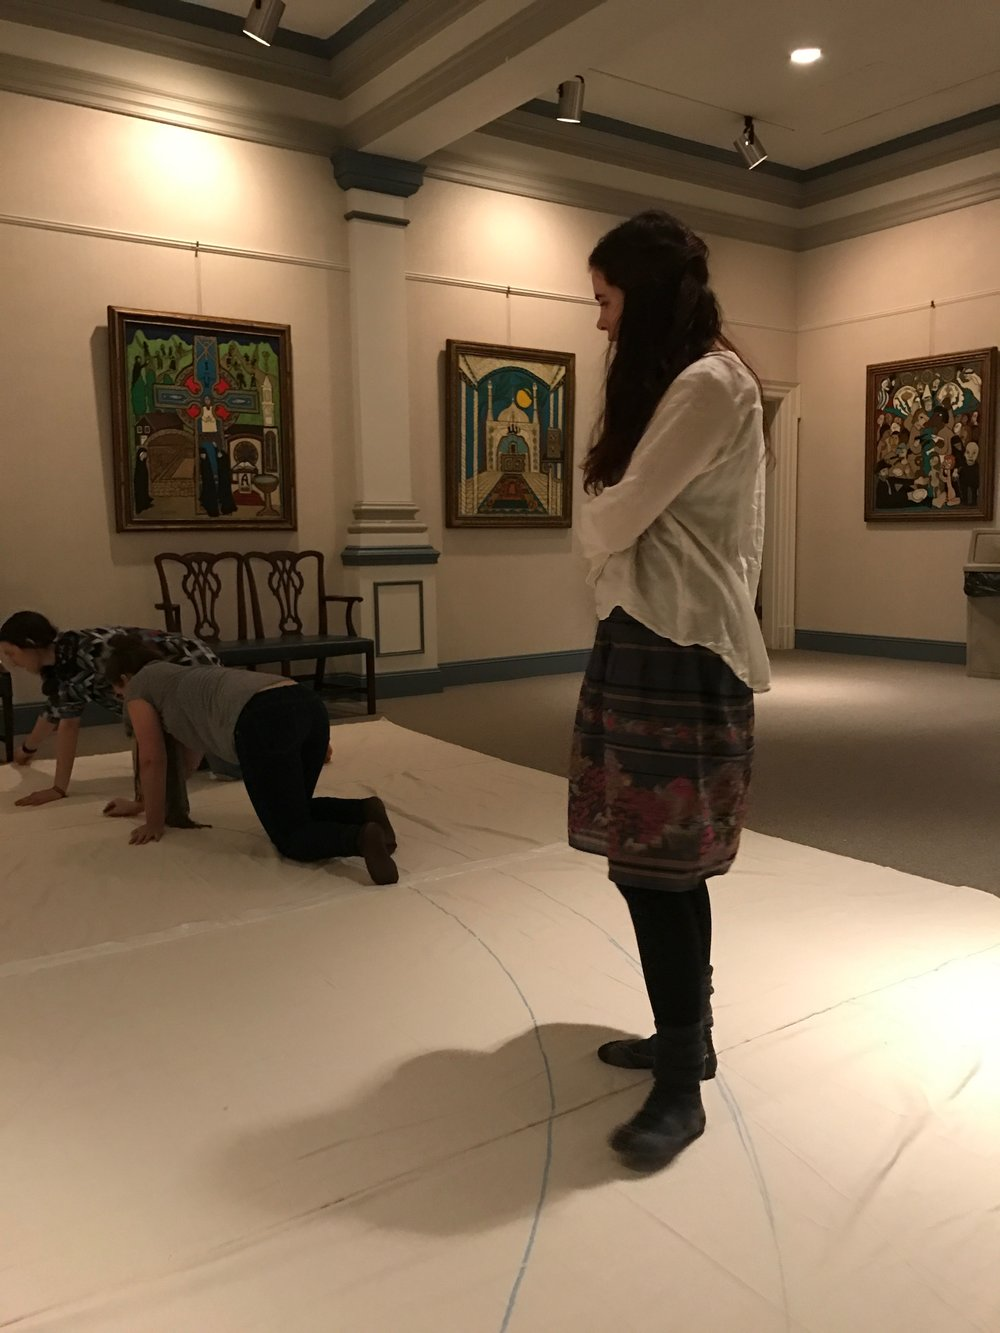 Creating a portable Labyrinth during the season of Lent